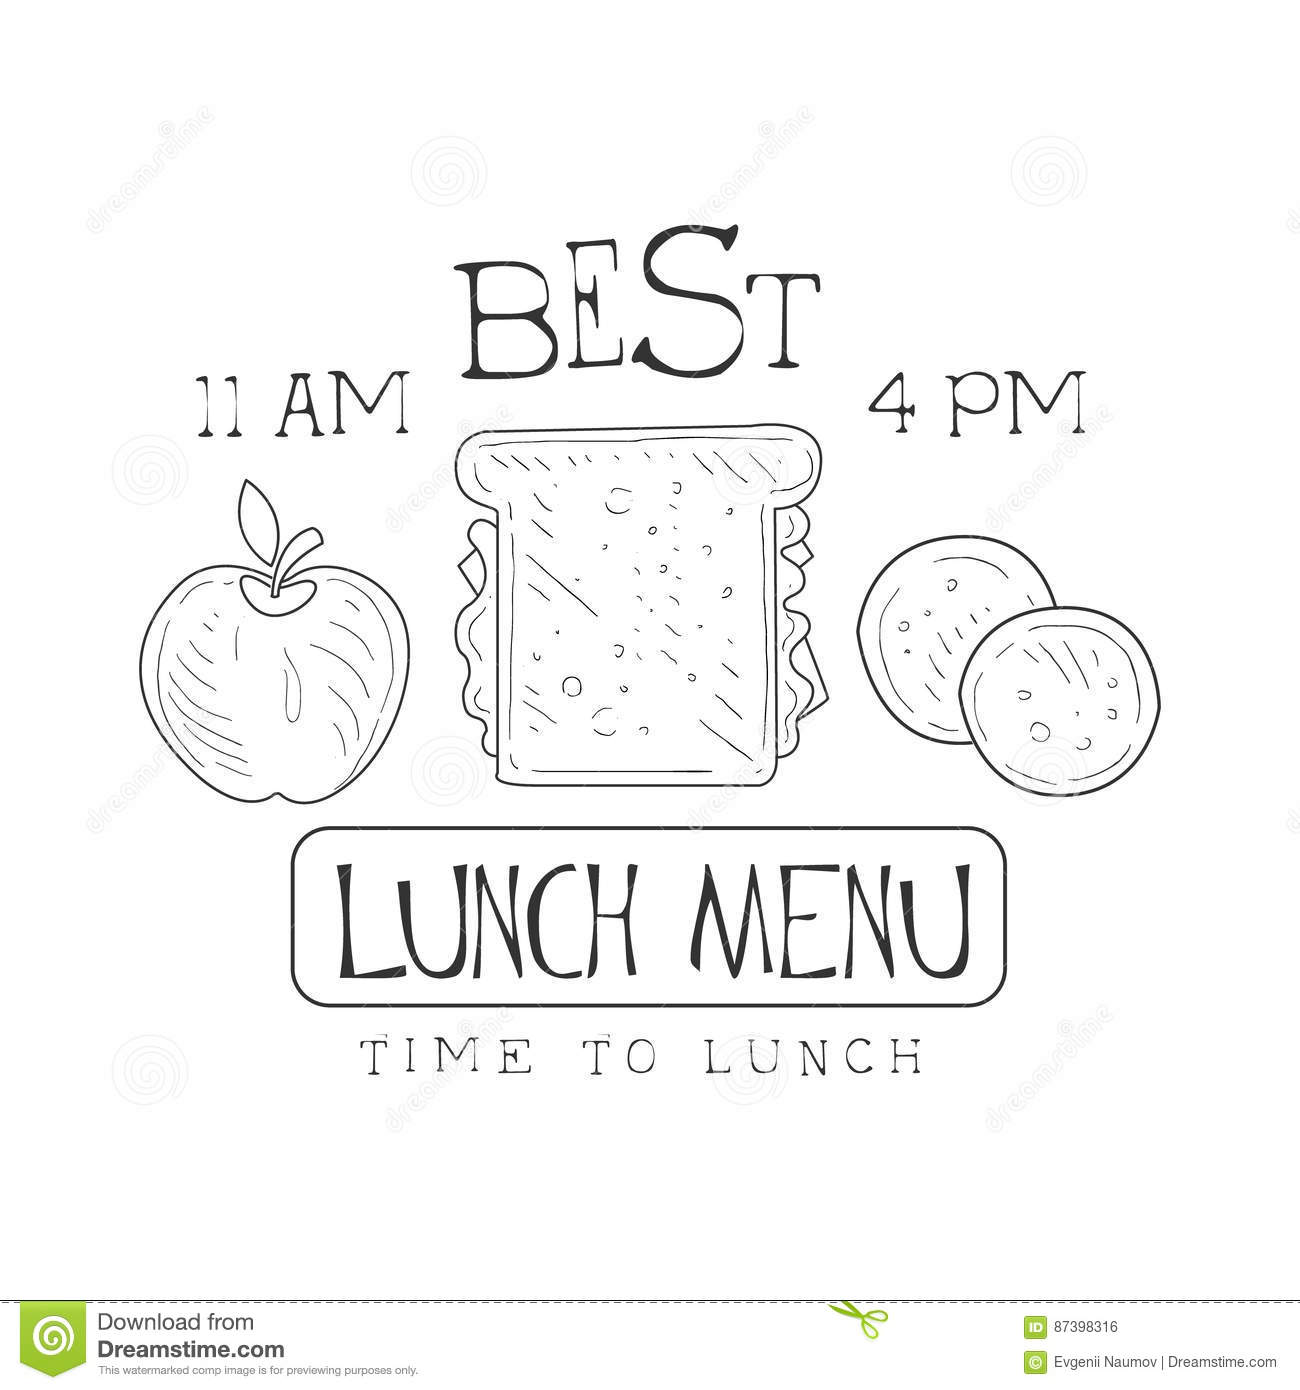 cafe lunch menu promo sign in sketch style with sandwich apple and